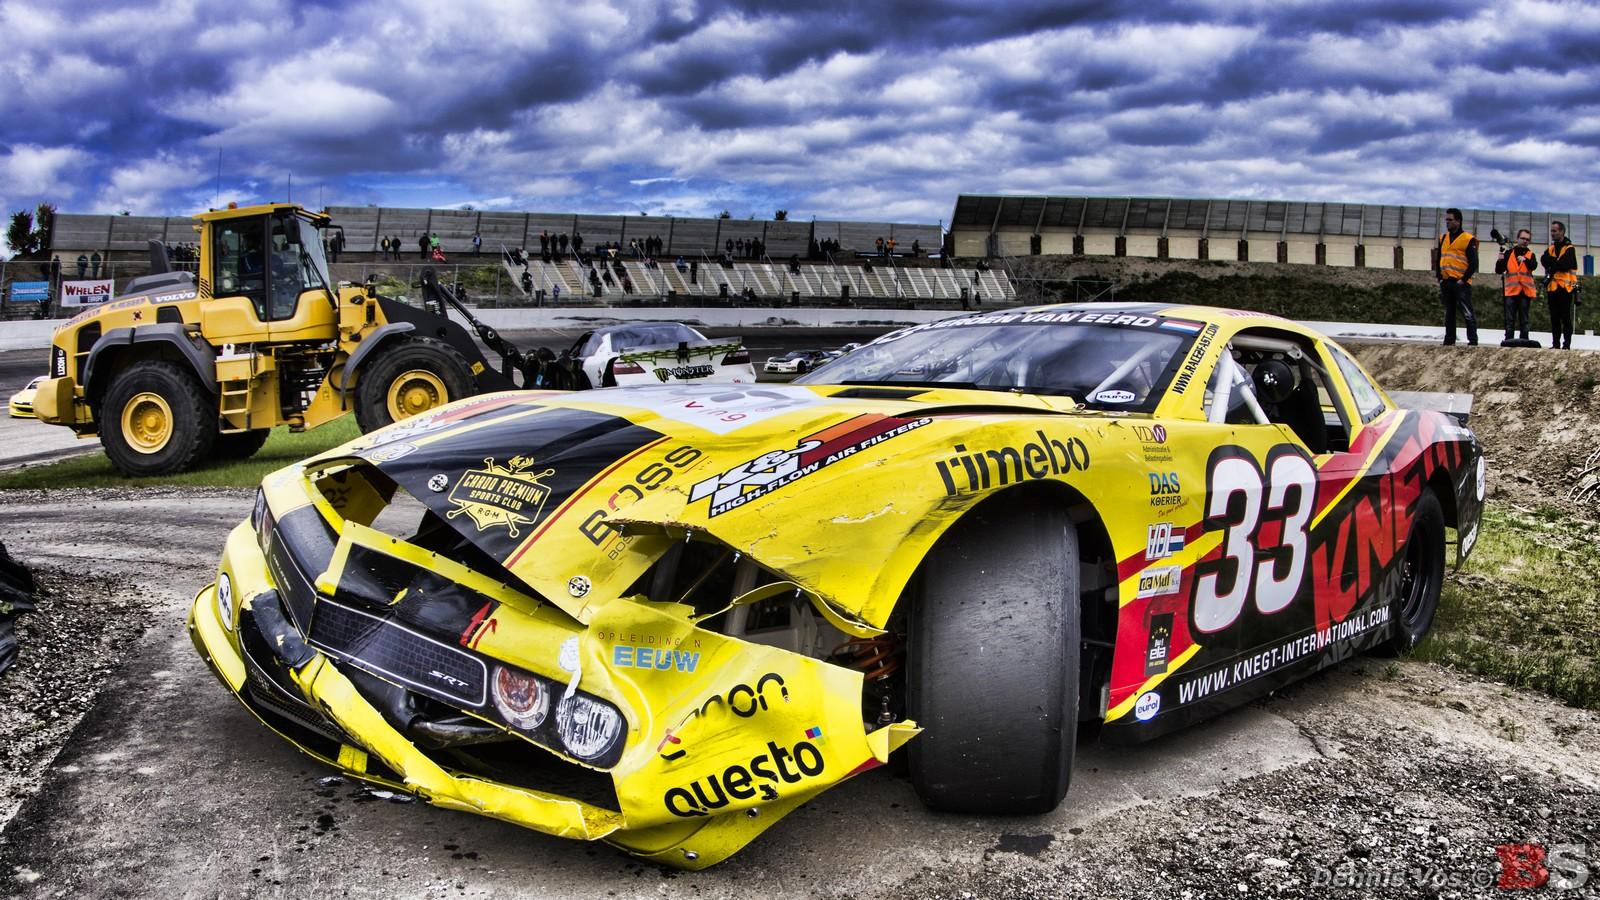 Event Coverage: The NASCAR Whelen Euro Series In the Netherlands – This Is Kind Of Awesome